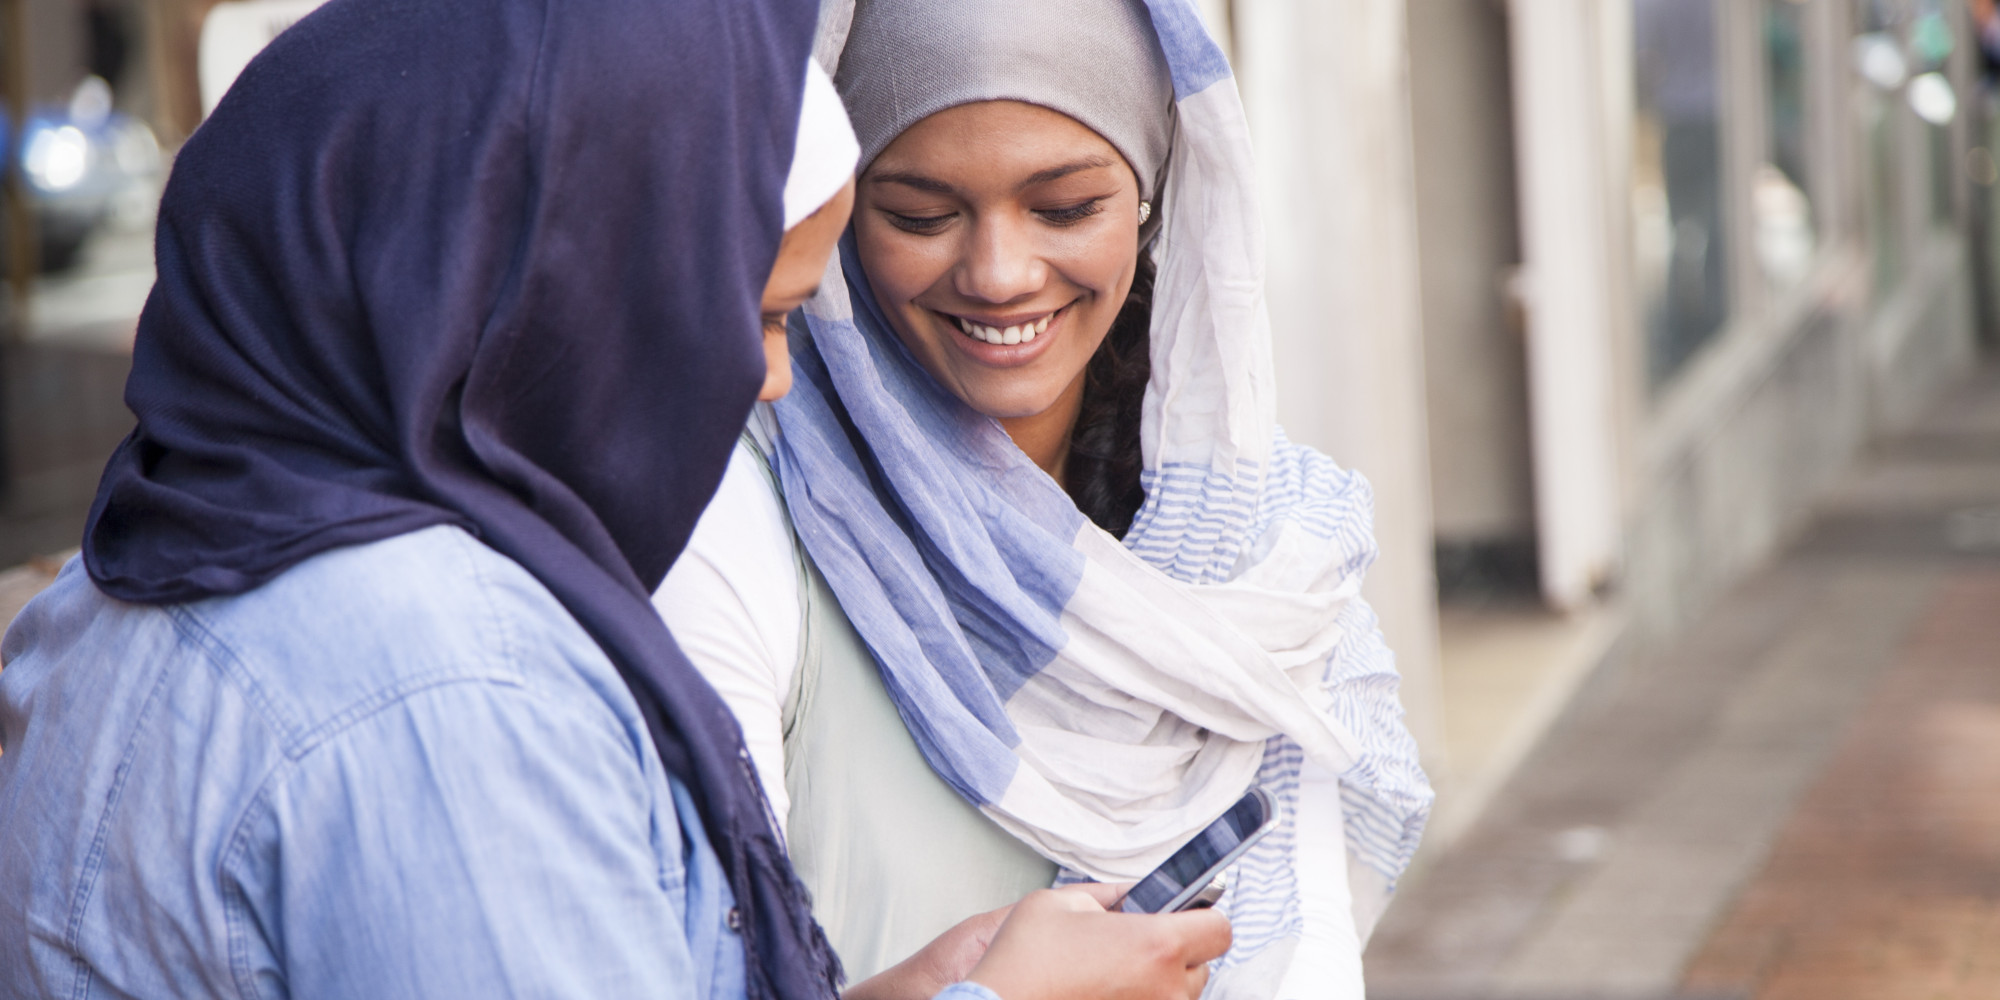 lindside muslim girl personals Why millions of muslims are signing up for online dating that is why the websites often show an african muslim man with an indo-pakistani girl.